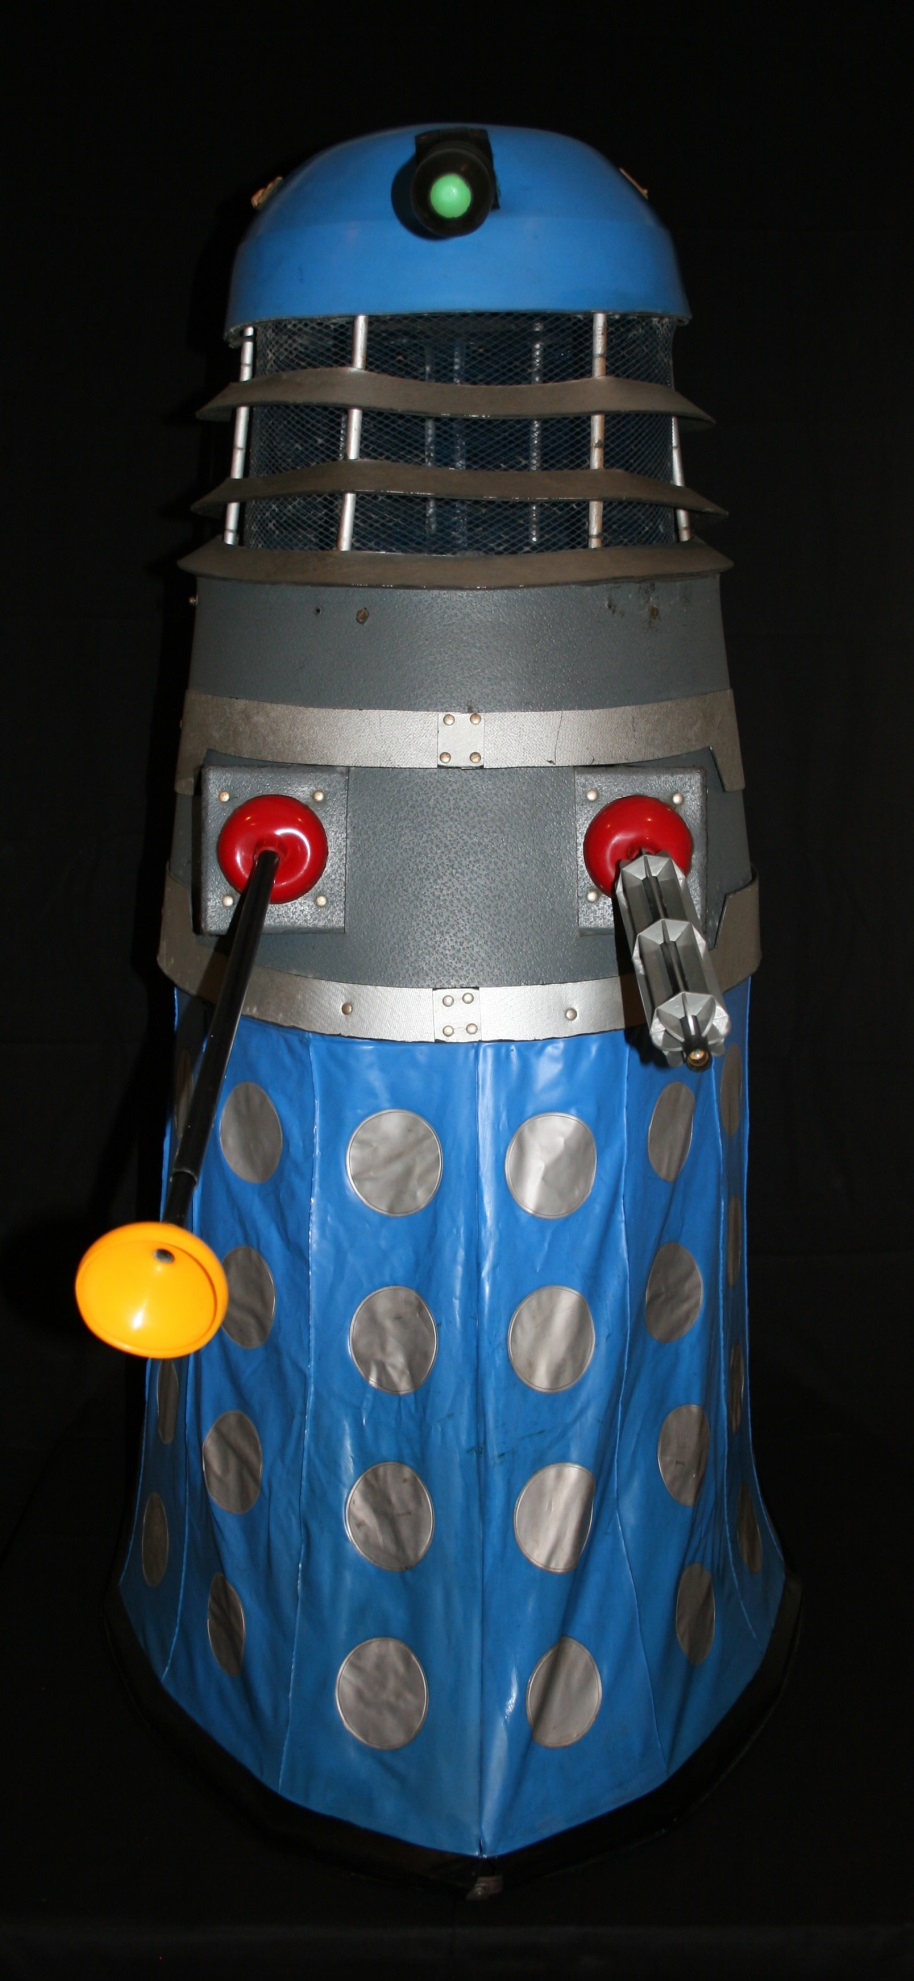 Scorpion Automotives Ltd. Dalek Playsuit